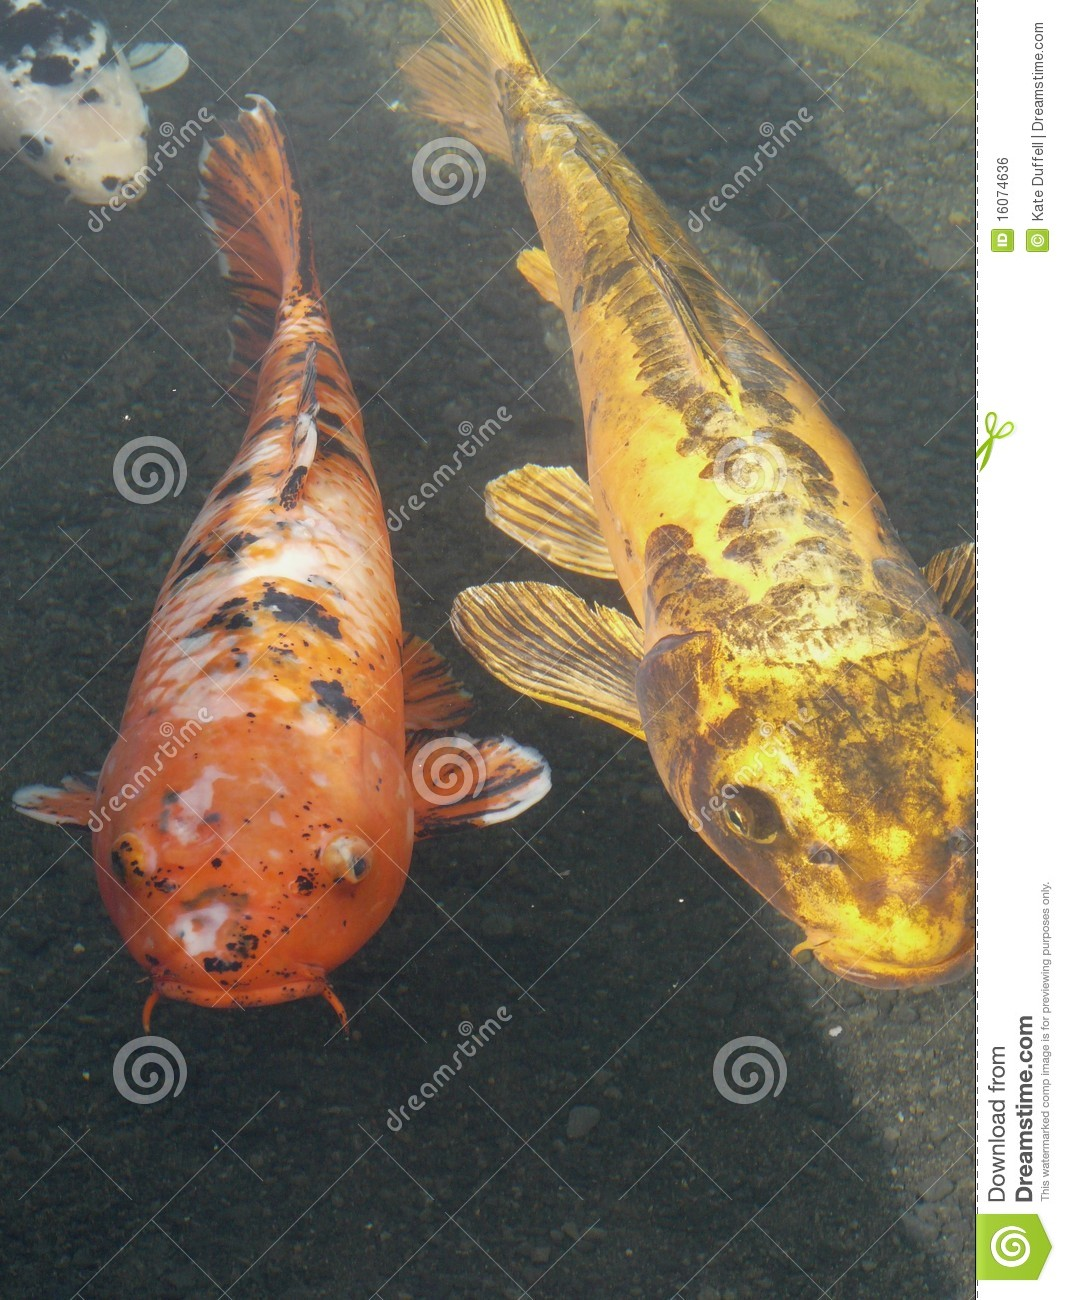 Ornamental koi carp fish stock photo image of animal for Japanese ornamental fish